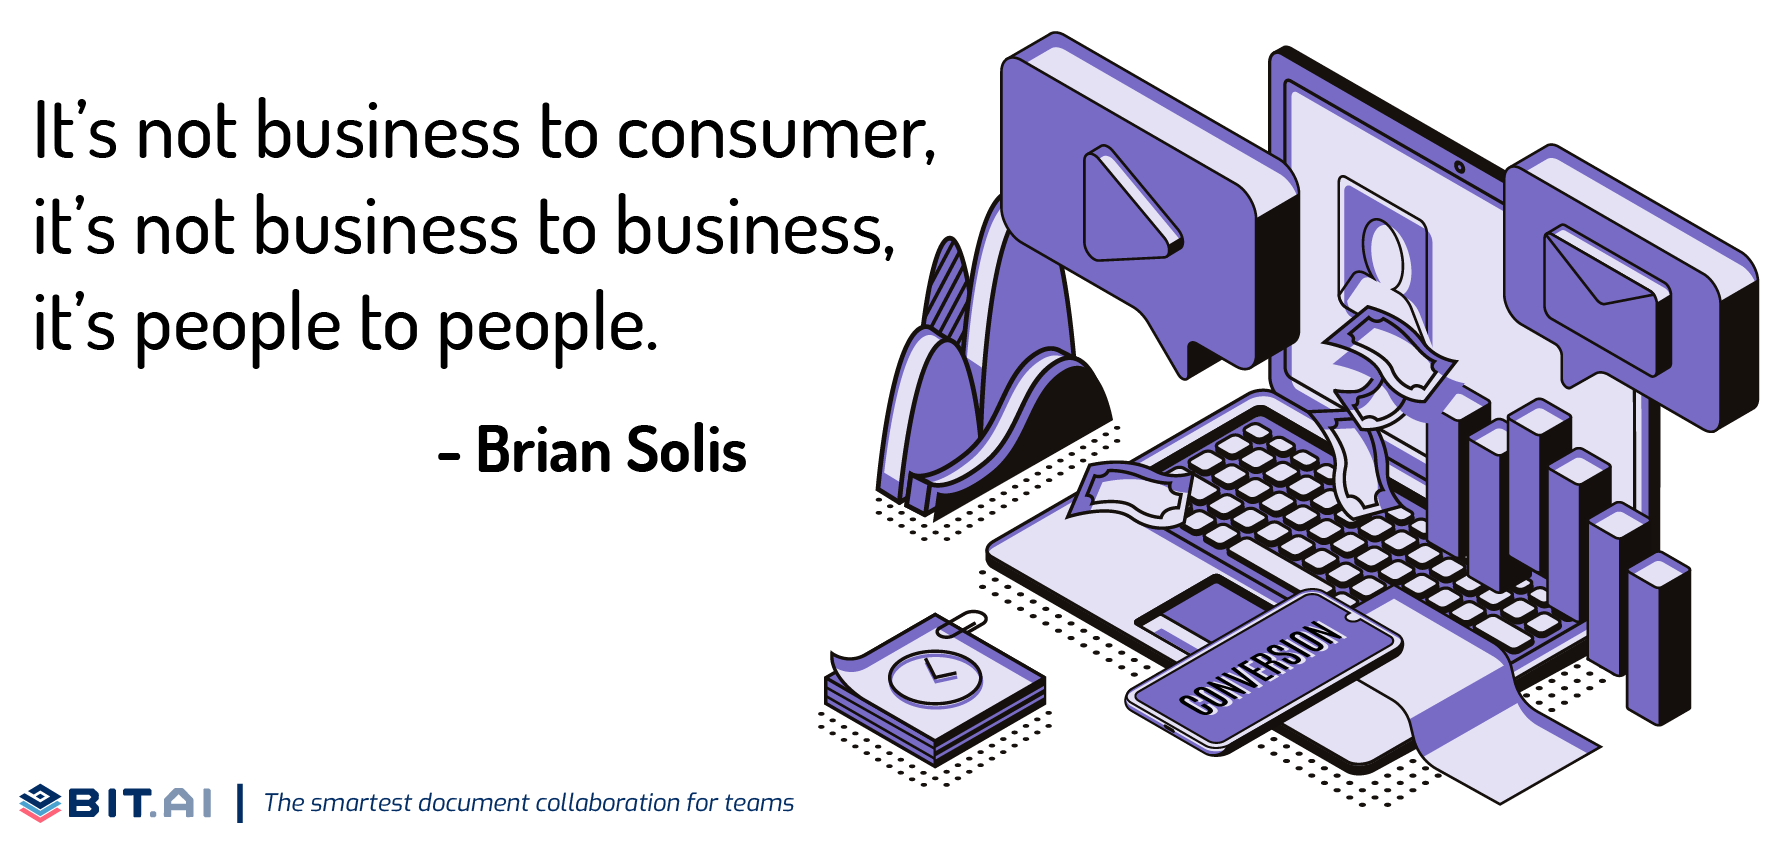 Illustration of quote related to B2B and B2C leads